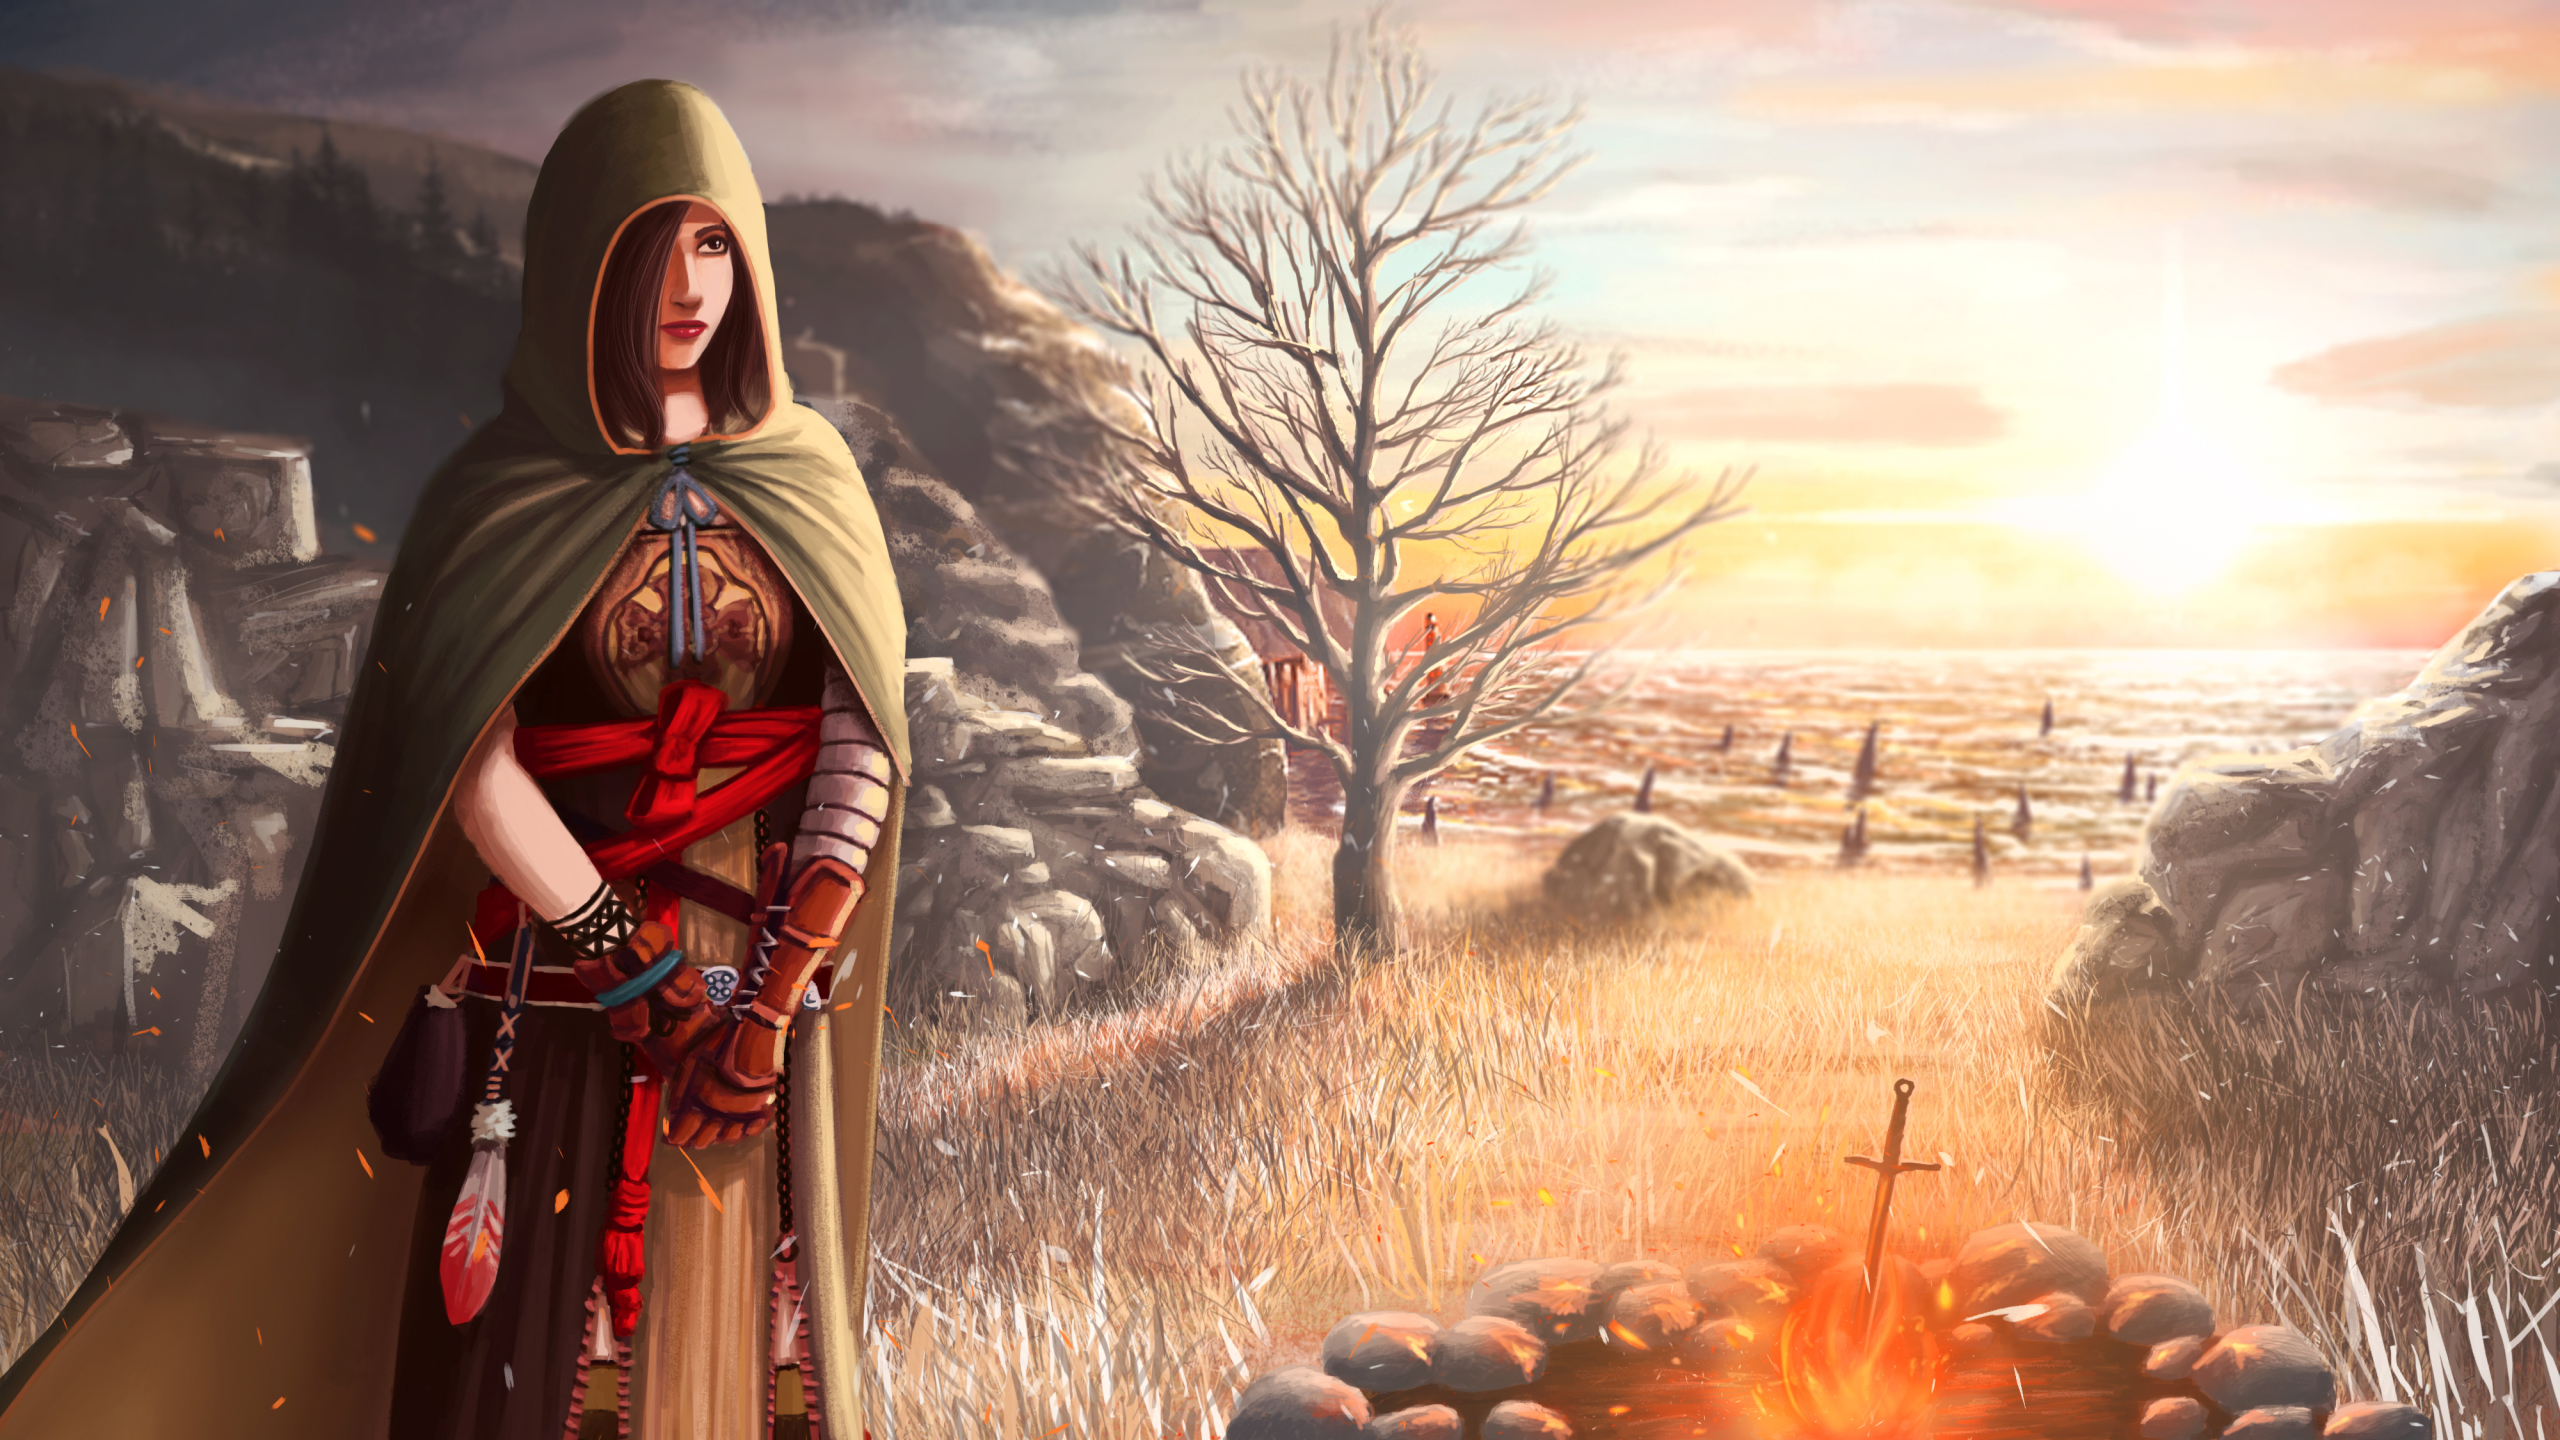 2560x1440 Dark Souls 2 Shanalotte Girl 1440p Resolution Wallpaper Hd Games 4k Wallpapers Images Photos And Background